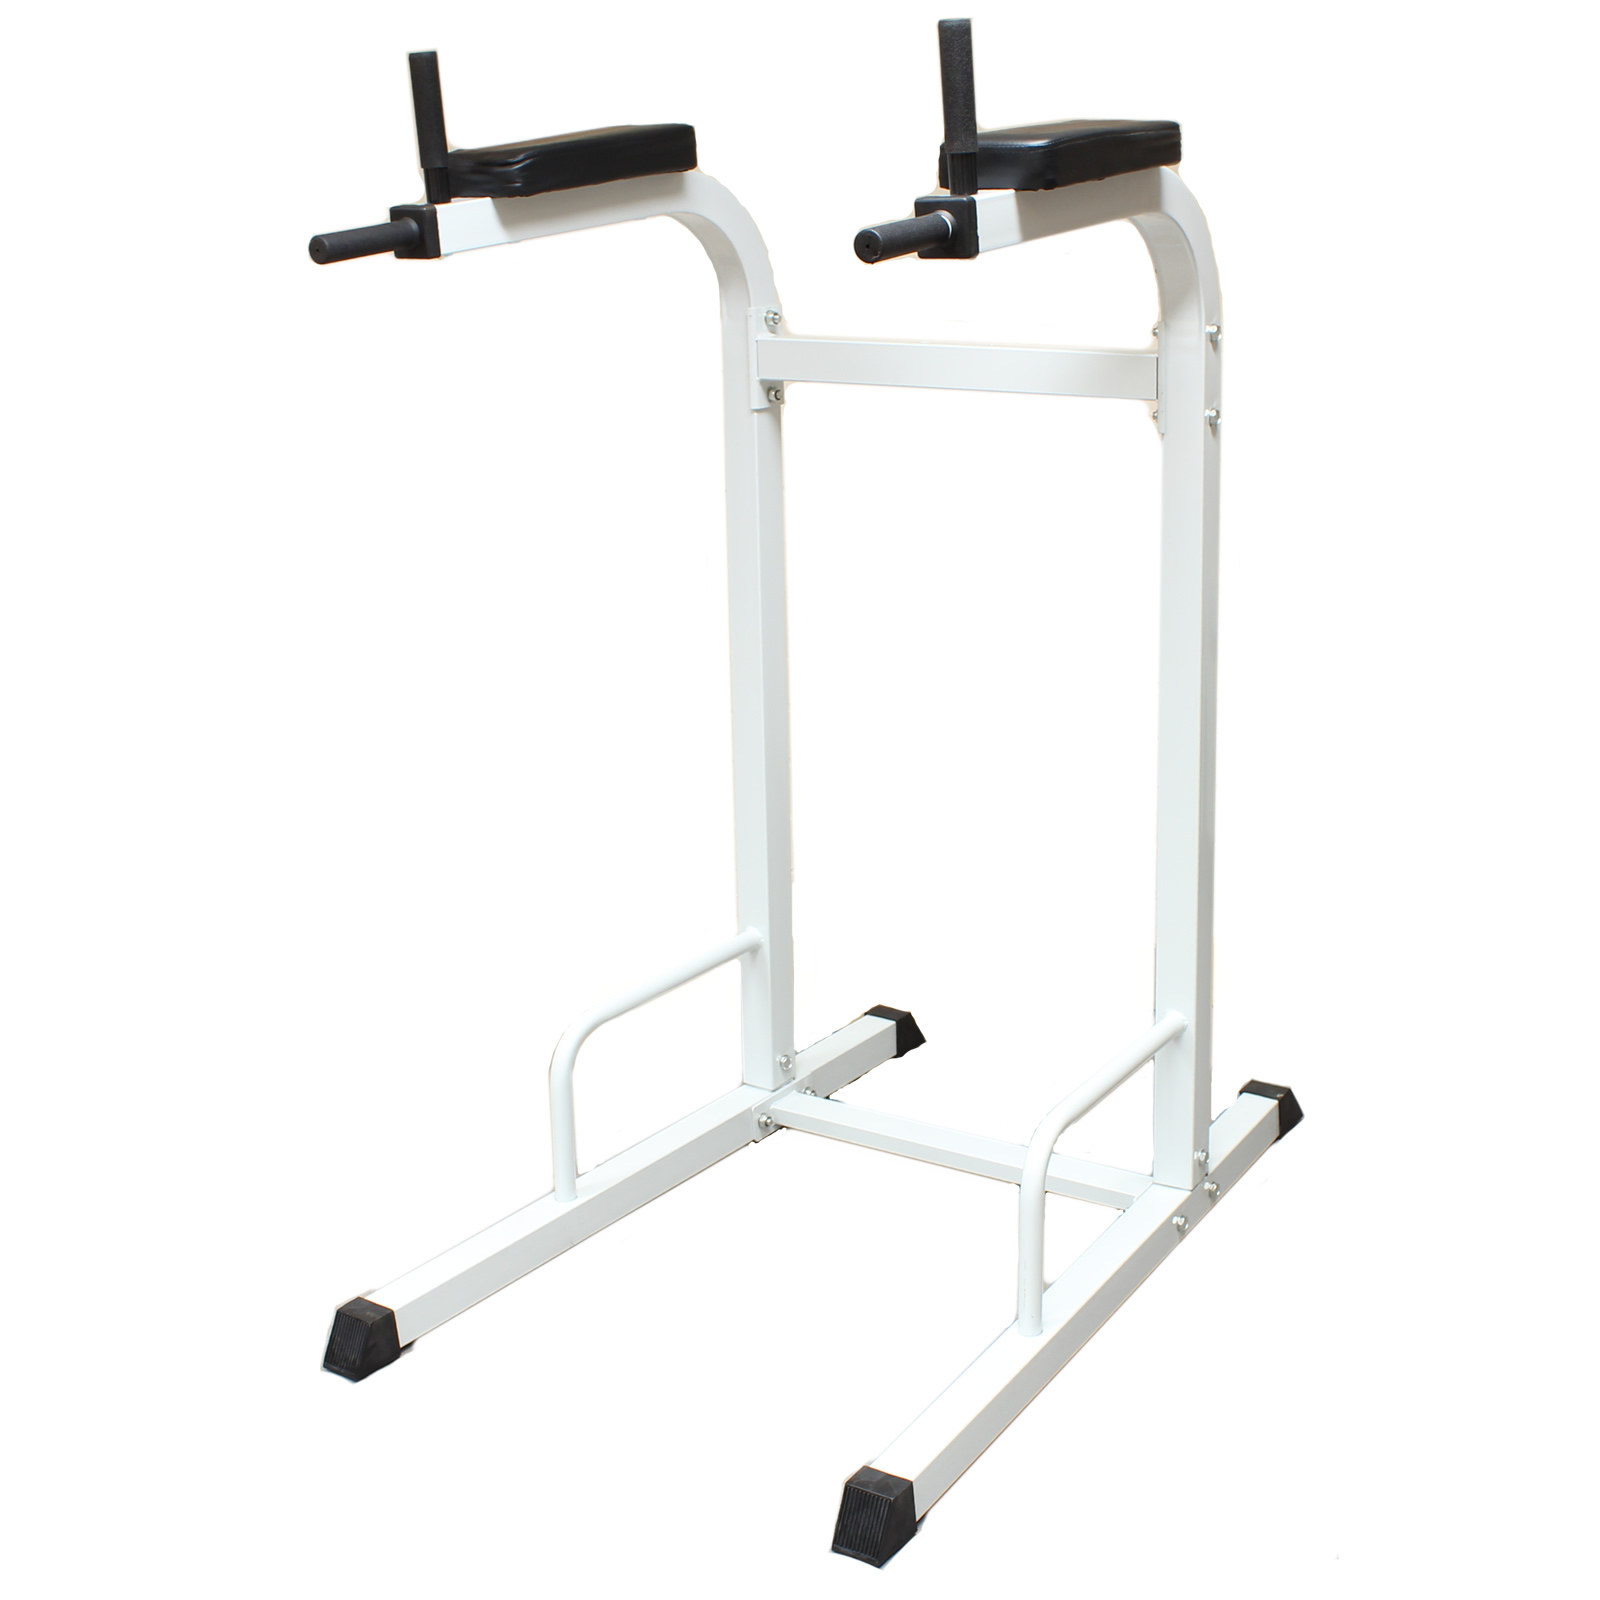 HEAVY DUTY DIPPING STATION DIP BAR STAND HOME GYM EQUIPMENT MACHINE TRICEP DIPS Enlarged Preview